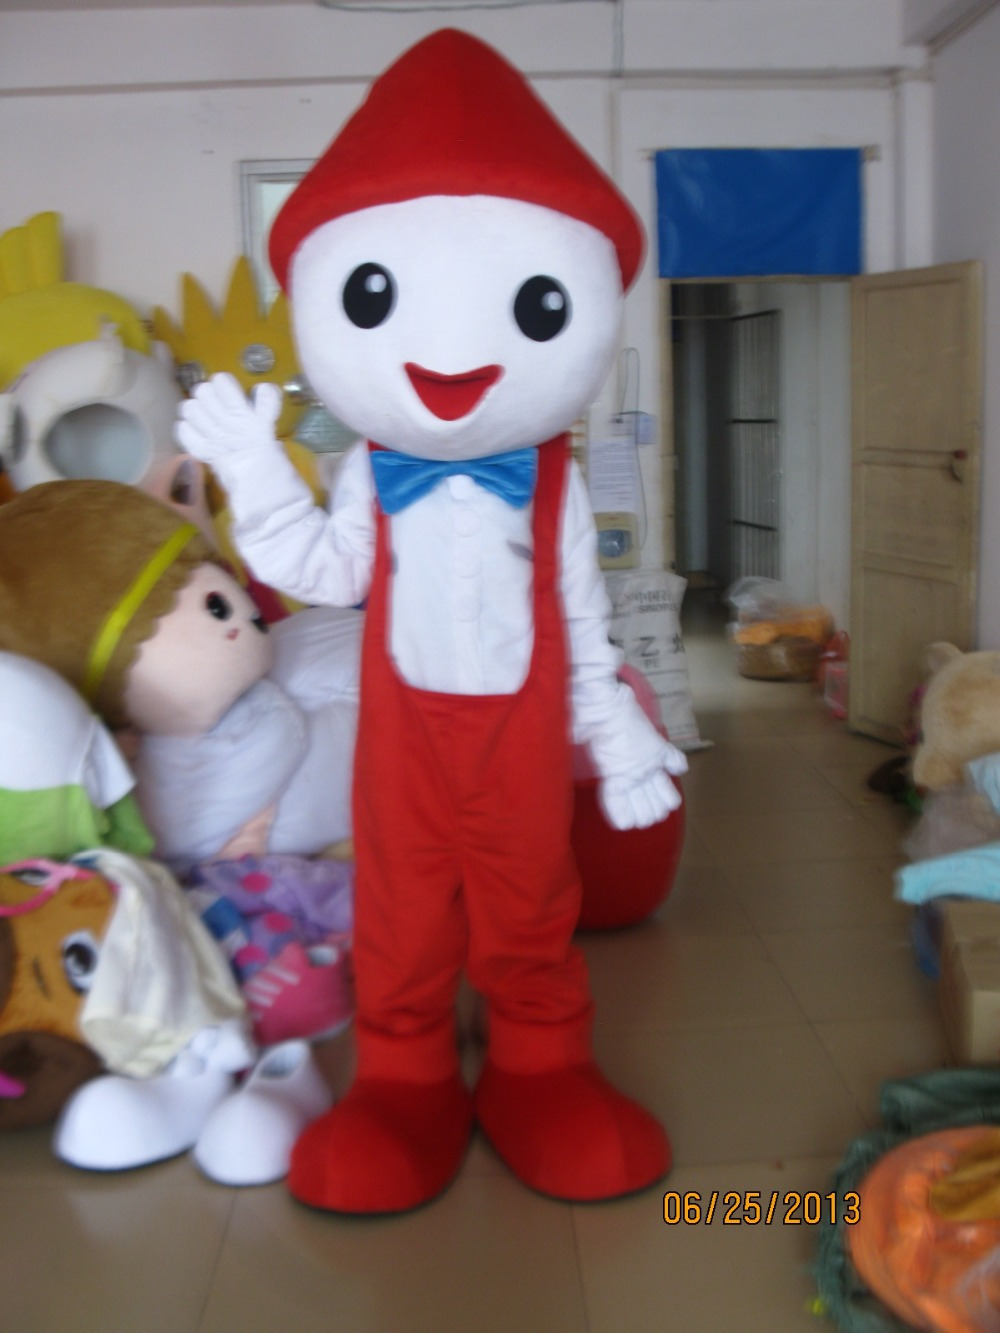 New arrival Adult Moive character cute red hat man Mascot Costume fancy dress party costumes